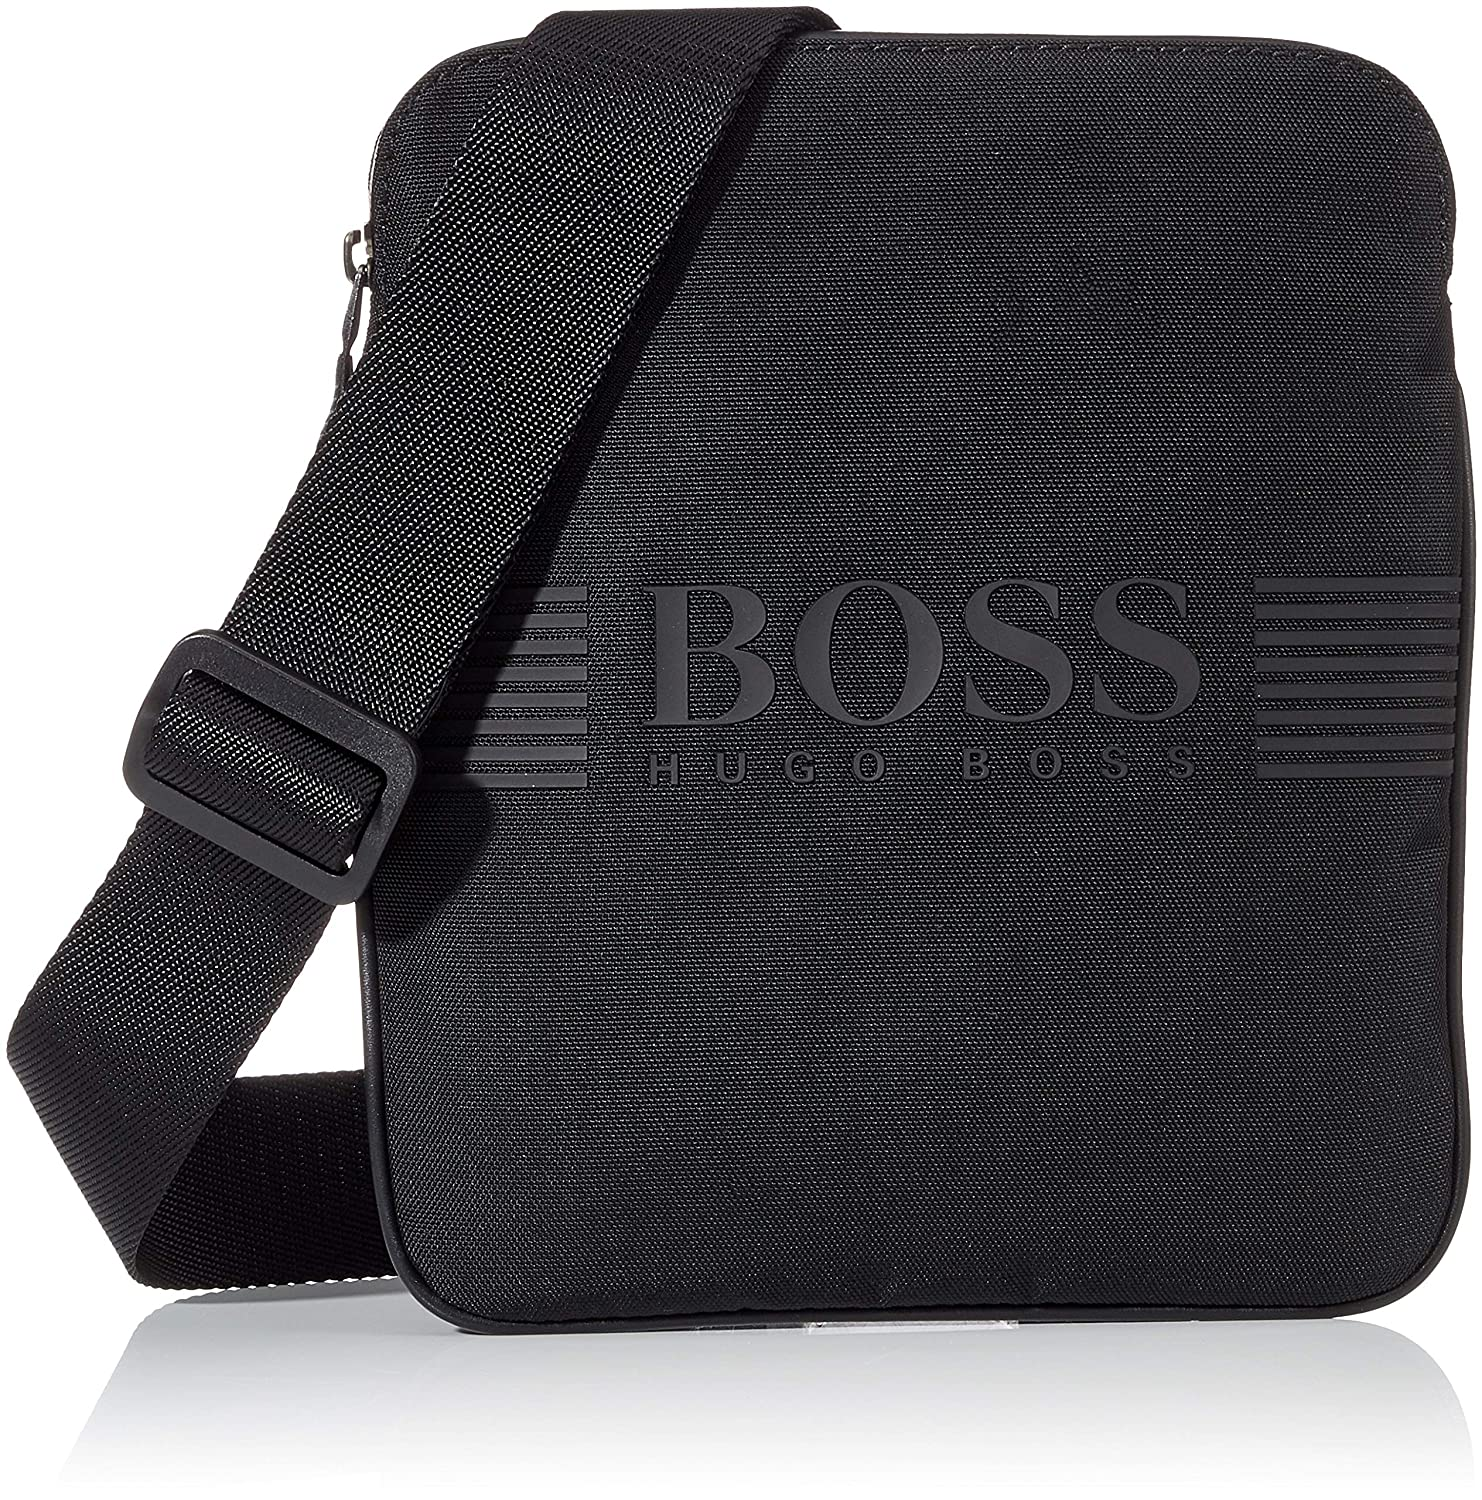 BOSS Green Pixel Homme Cross Body Bag Noir BOSS Green Pixel_s Zip Env Sacs portés épaule homme Schwarz (Black) 19.5x23.5x1 cm (B x H T)